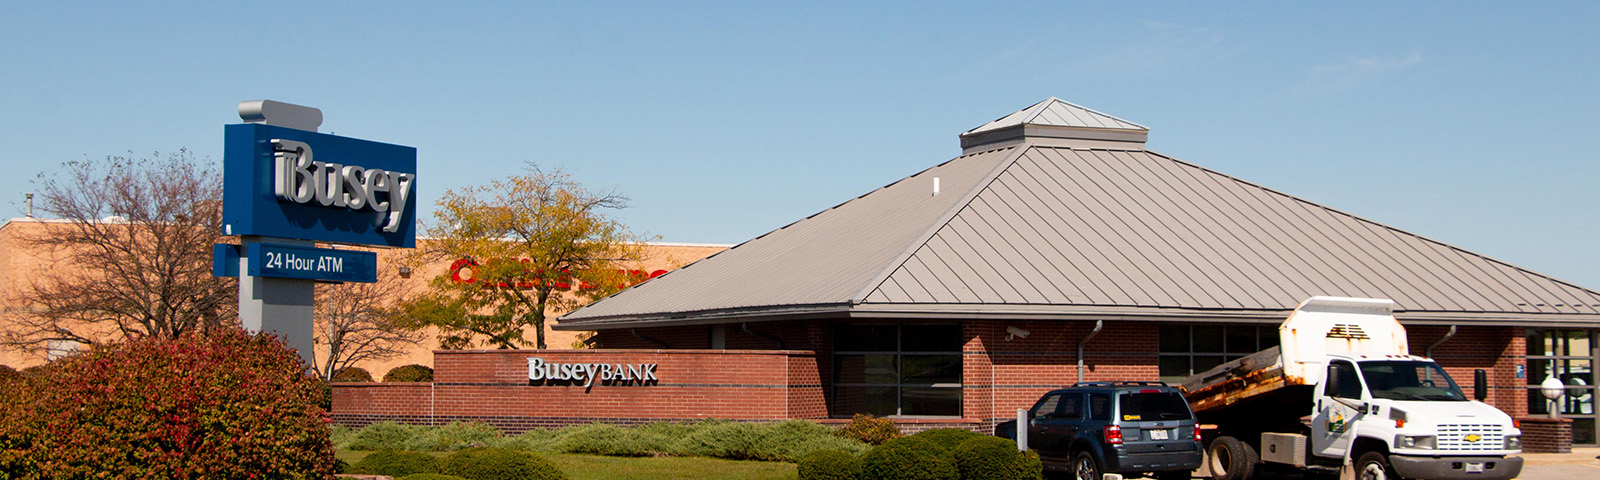 Busey Bank Willow Knolls location